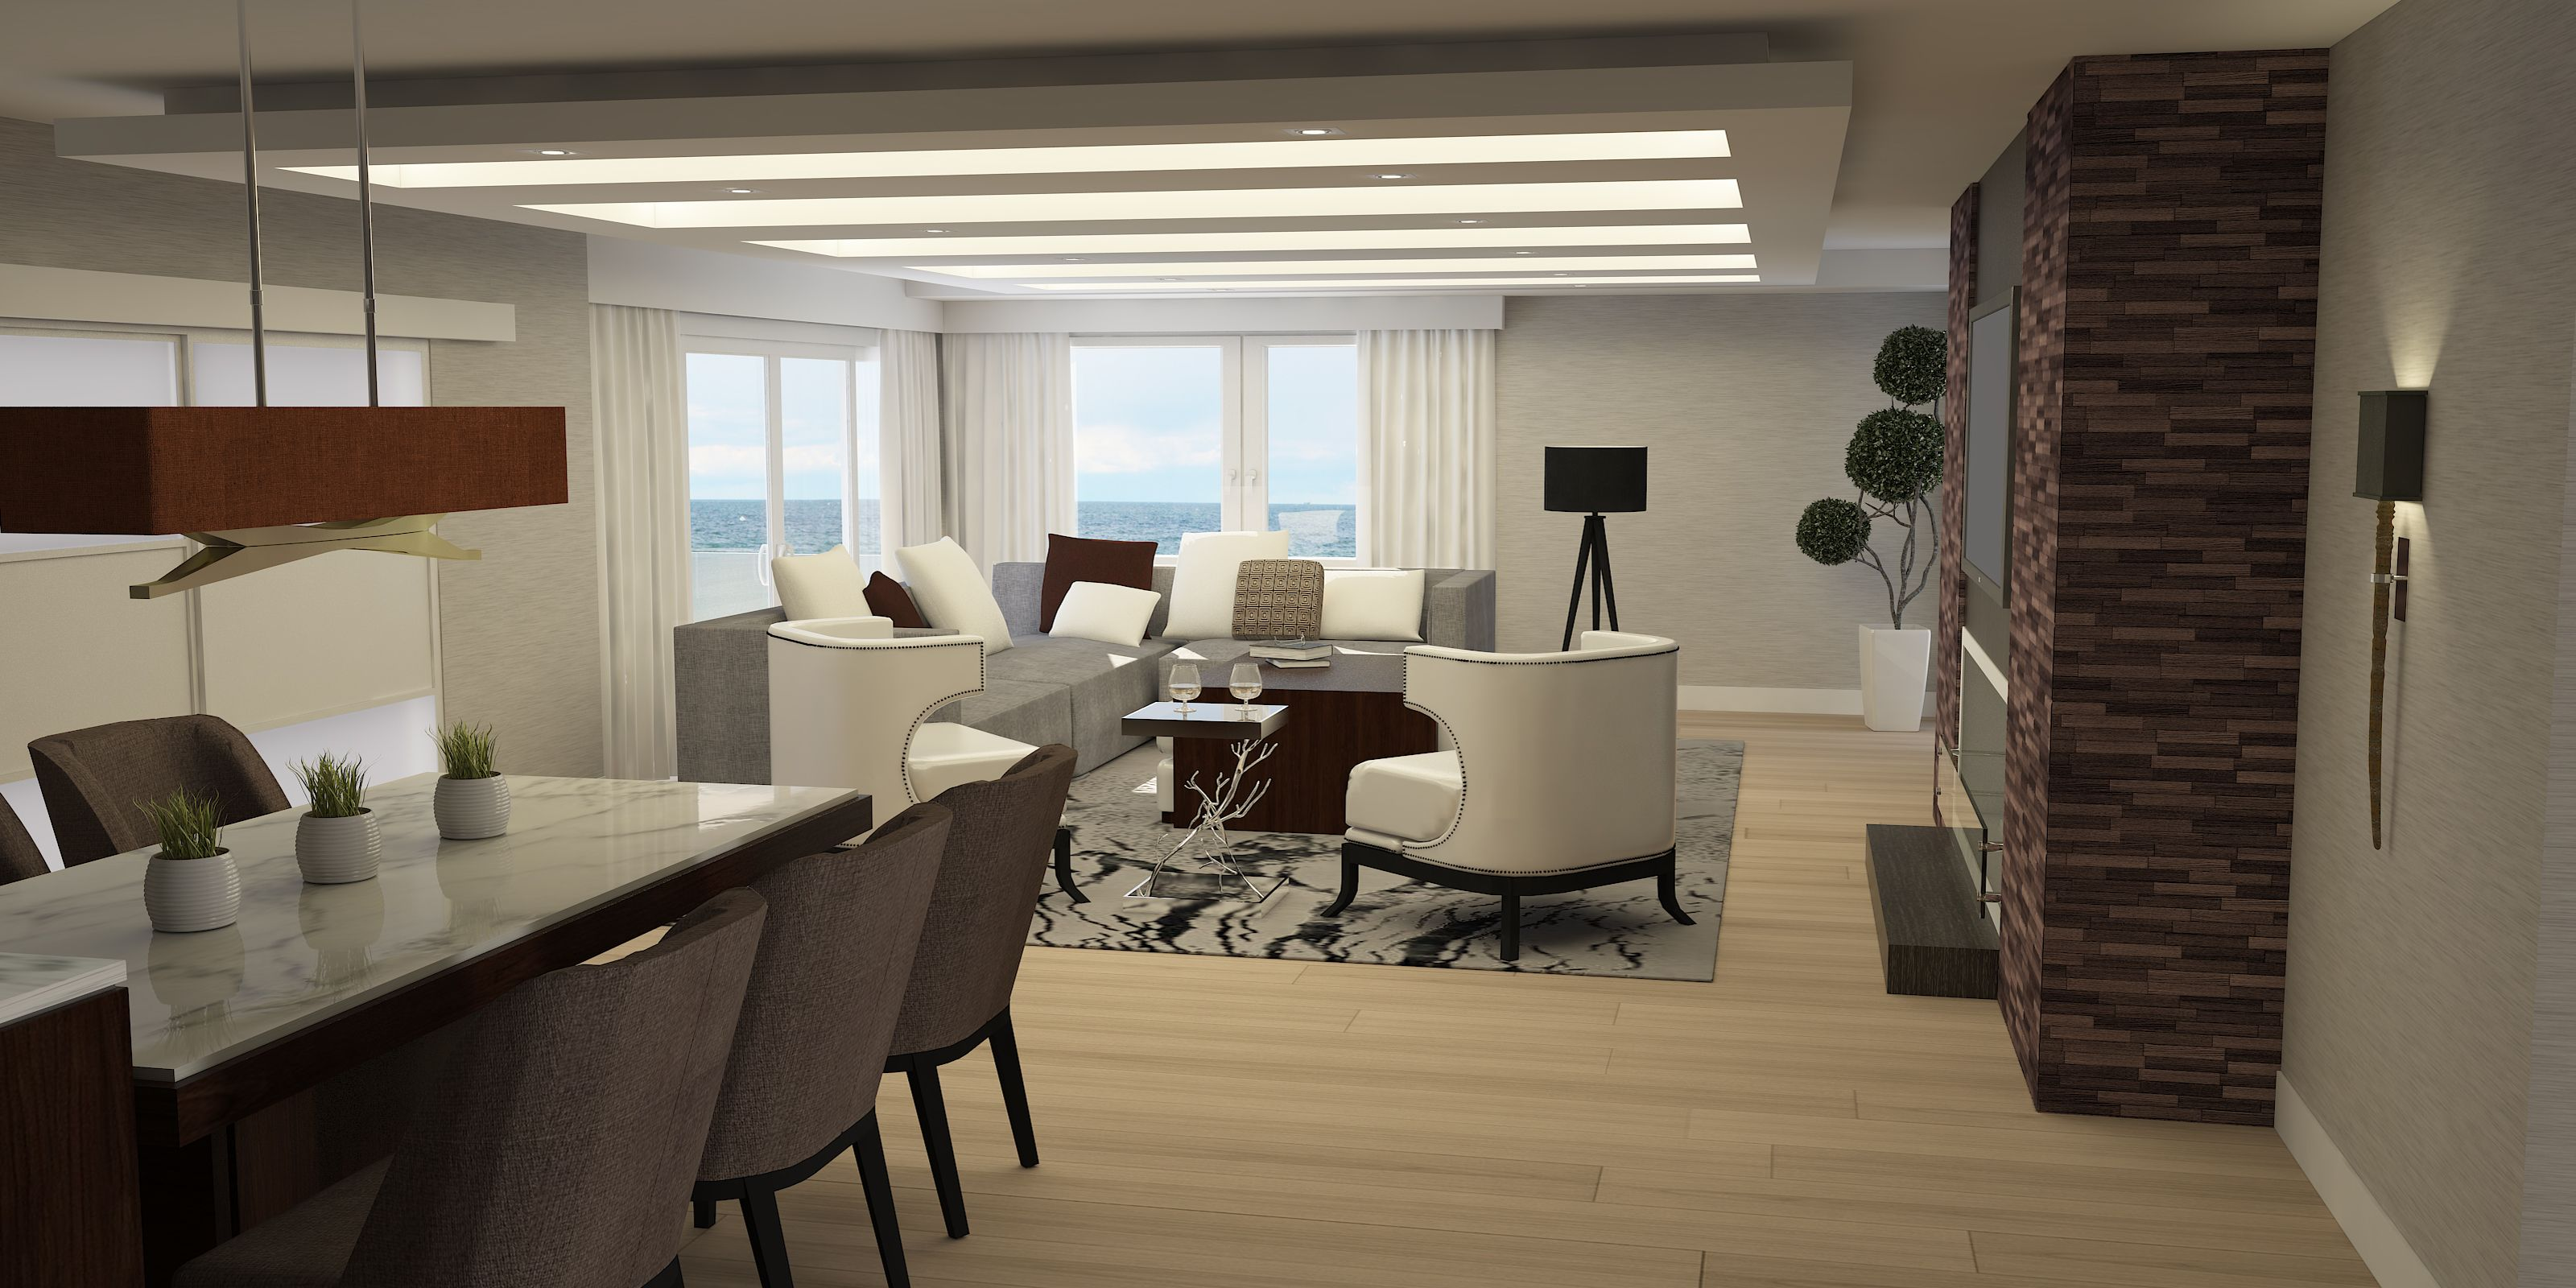 Dise o interior estar comedor diario render y for Diseno interiores 3d